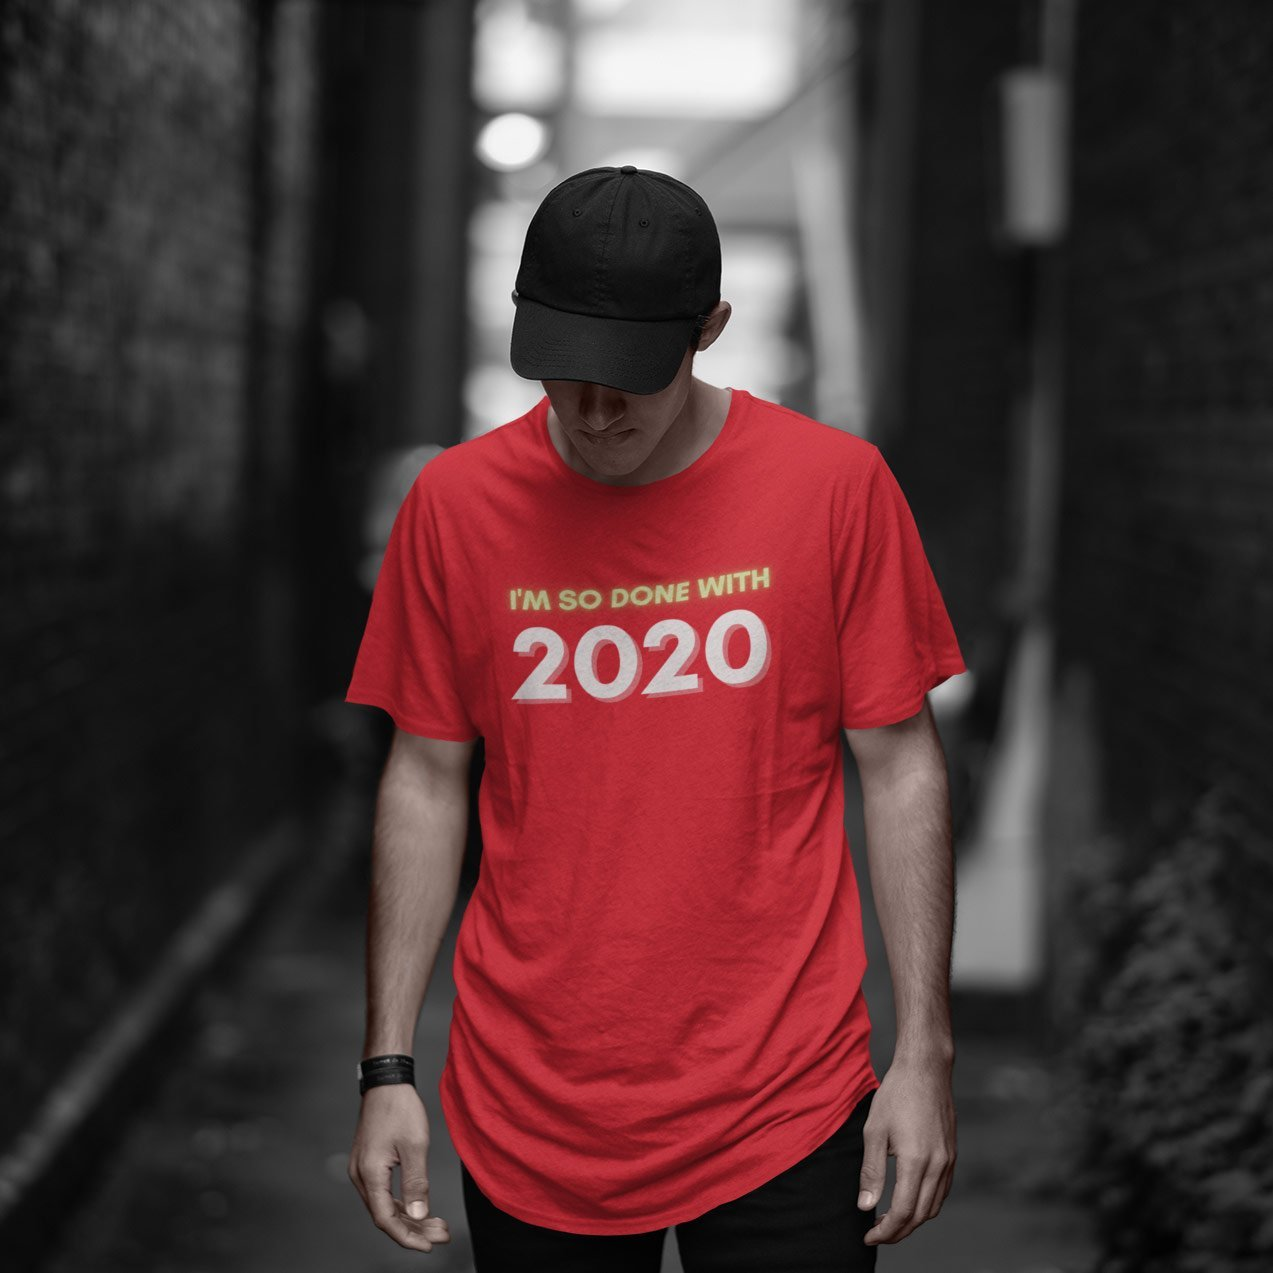 I'm So Done With 2020 T-Shirt